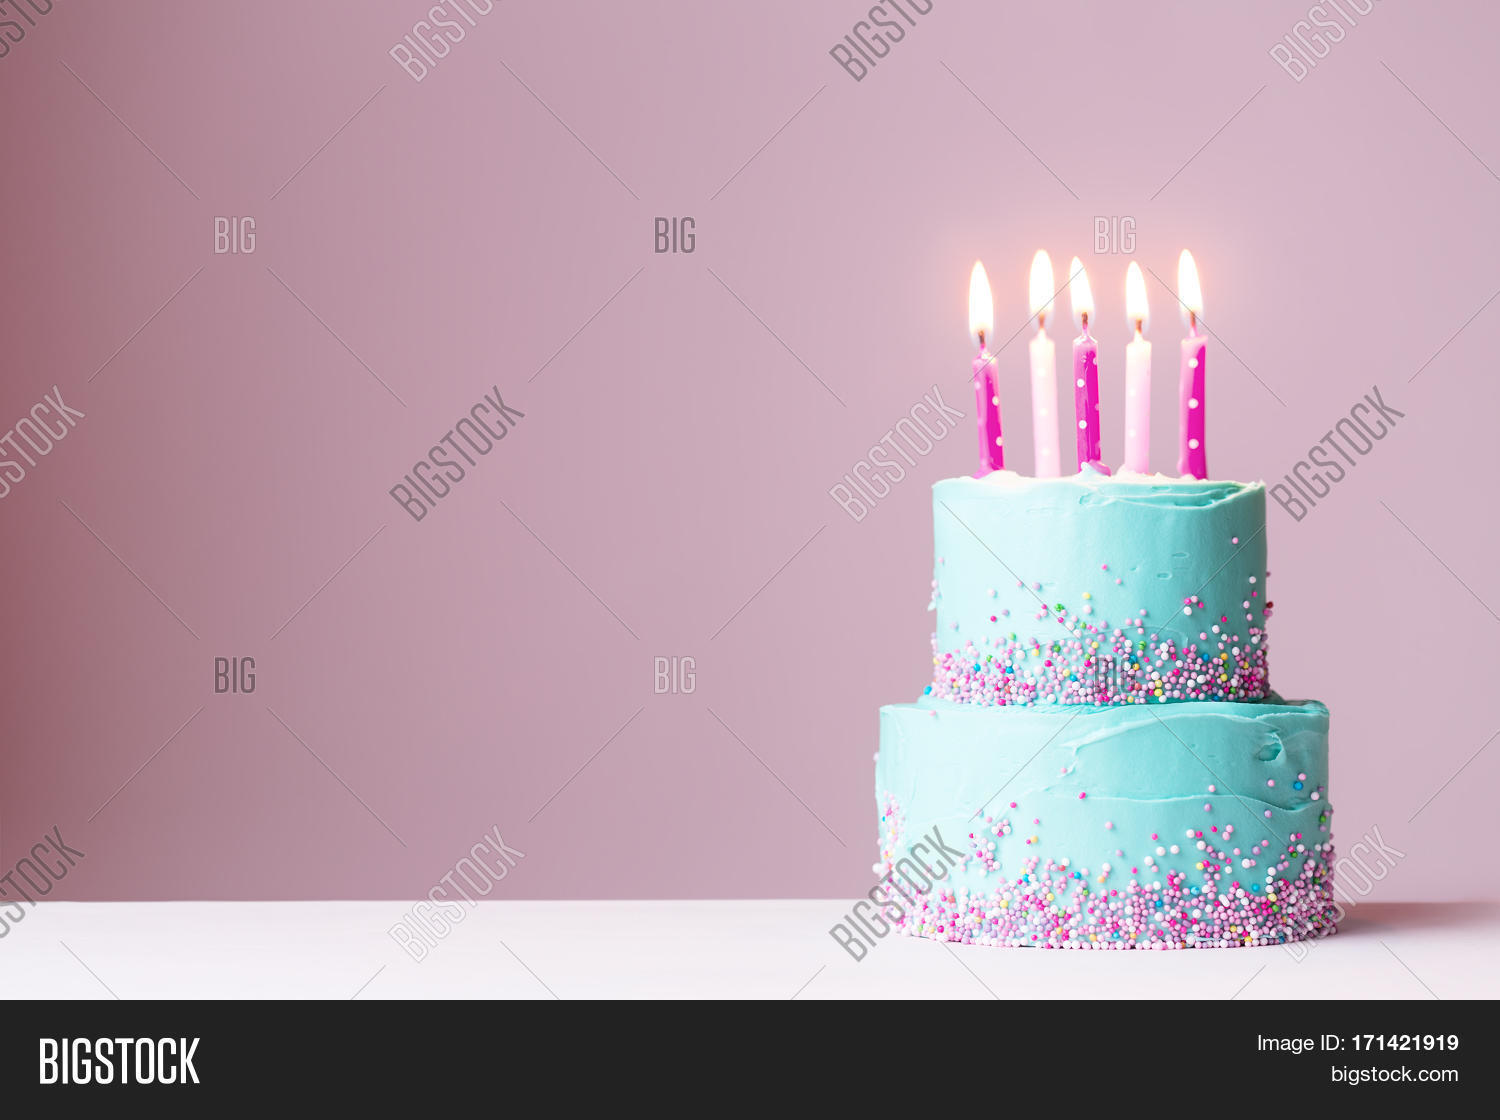 Pleasant Tiered Birthday Cake Image Photo Free Trial Bigstock Funny Birthday Cards Online Inifofree Goldxyz